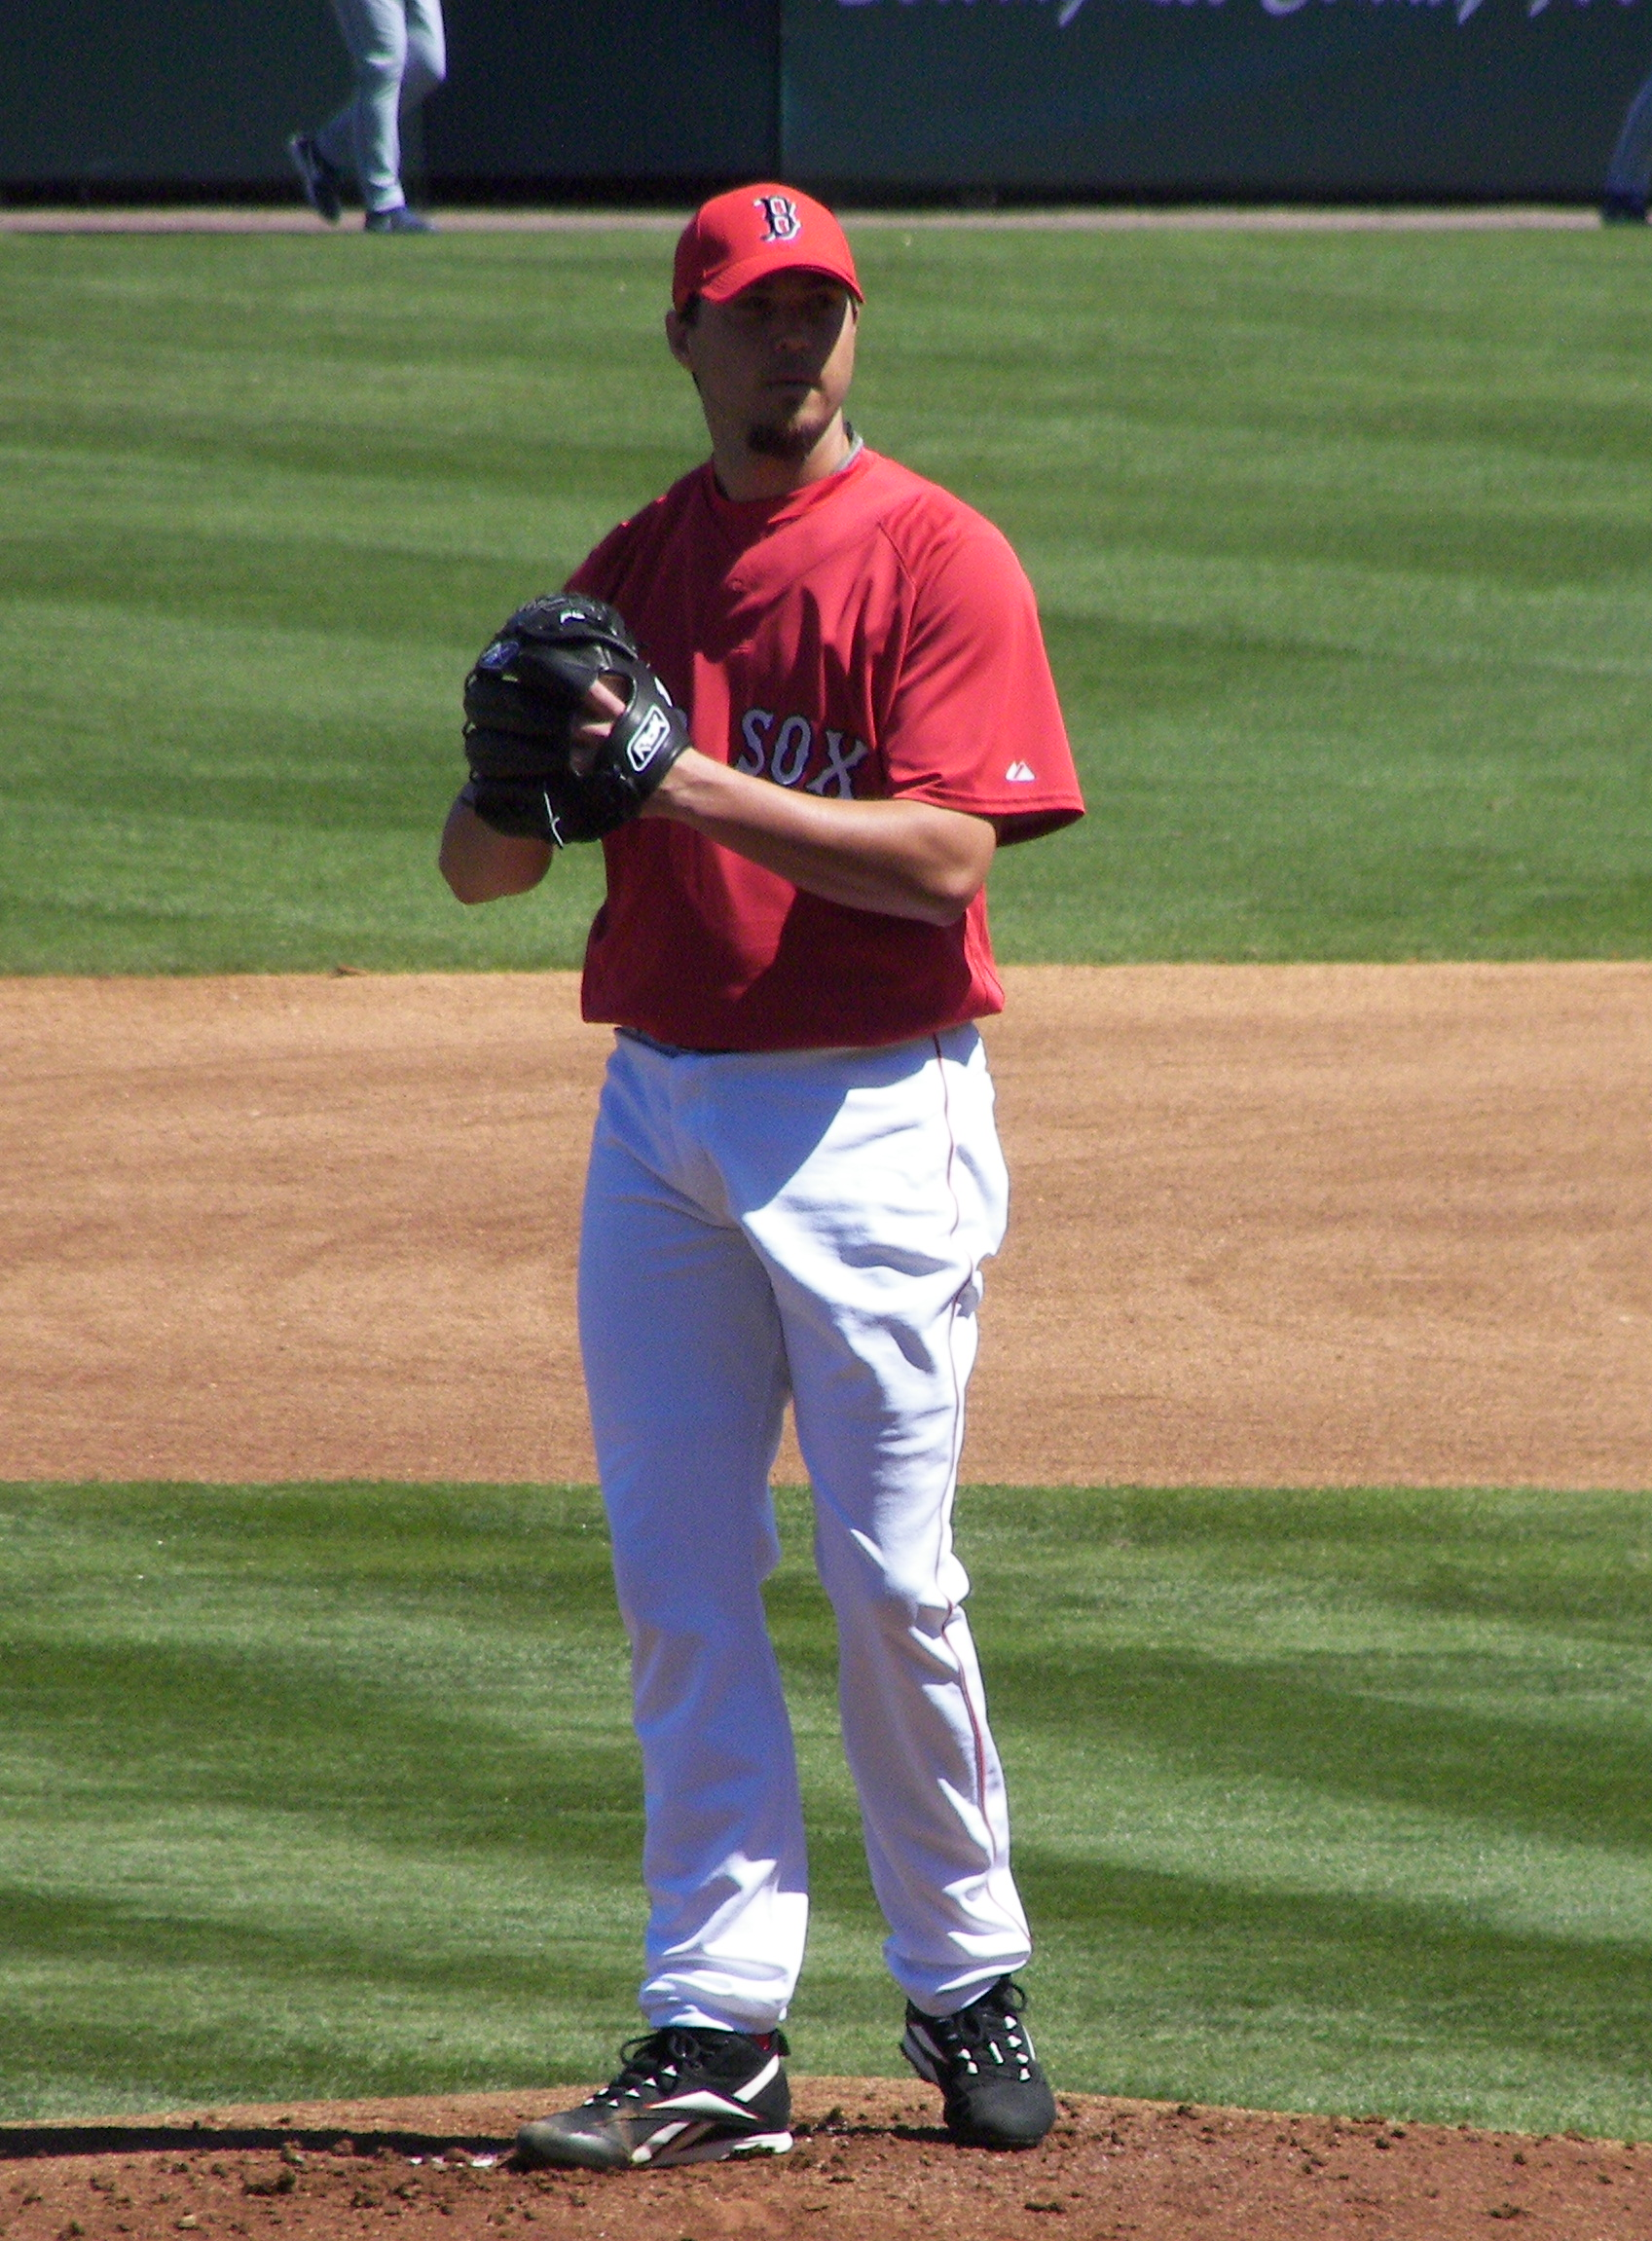 File:Josh Beckett.jpg - Wikimedia Commons